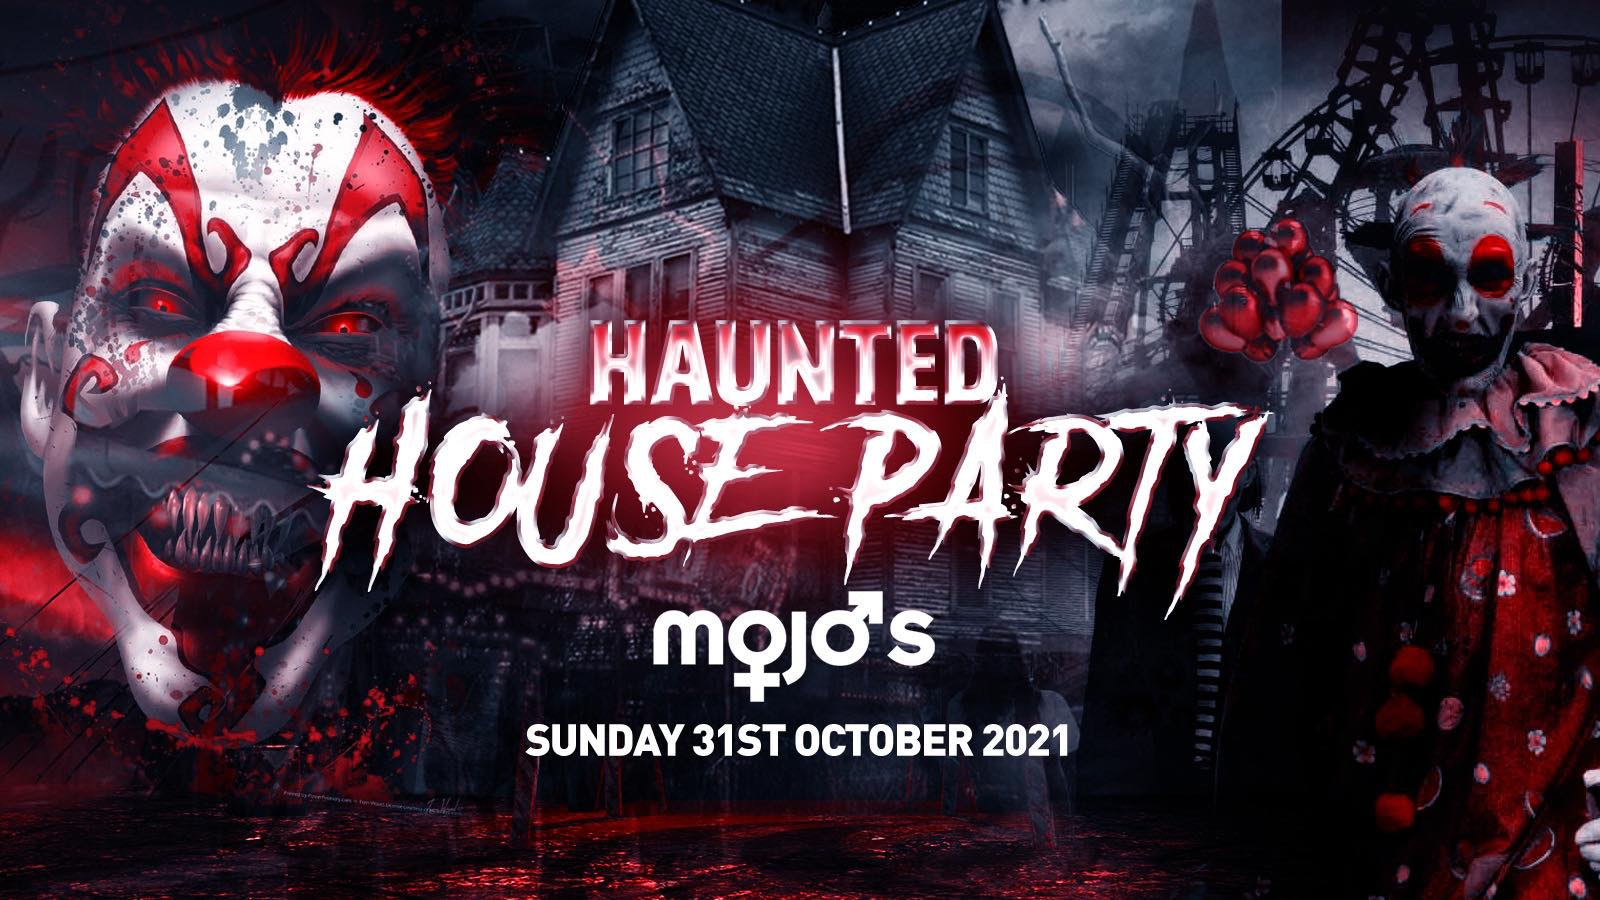 The Haunted House Party | Norwich Halloween 2021 – First 100 Tickets ONLY £3!